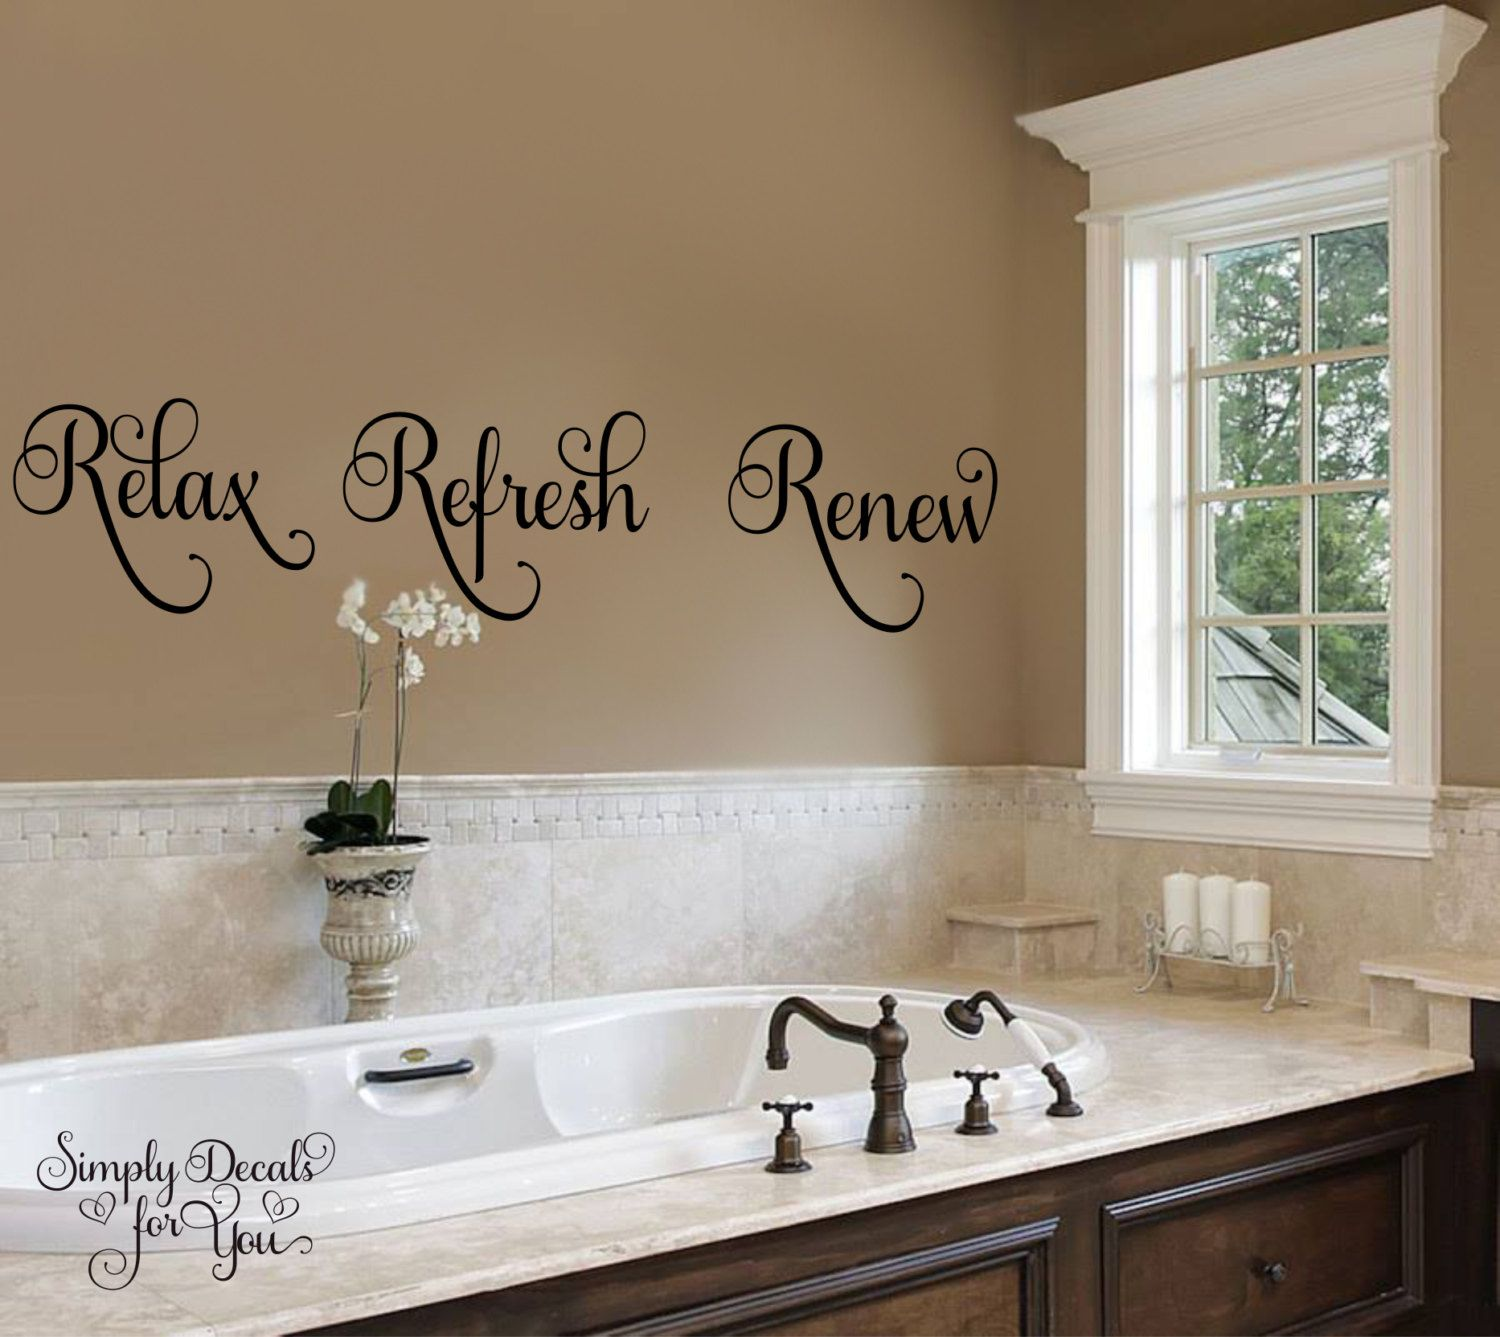 Relax Refresh Renew Bathroom Wall Decal Bathroom Decal Wall Decal